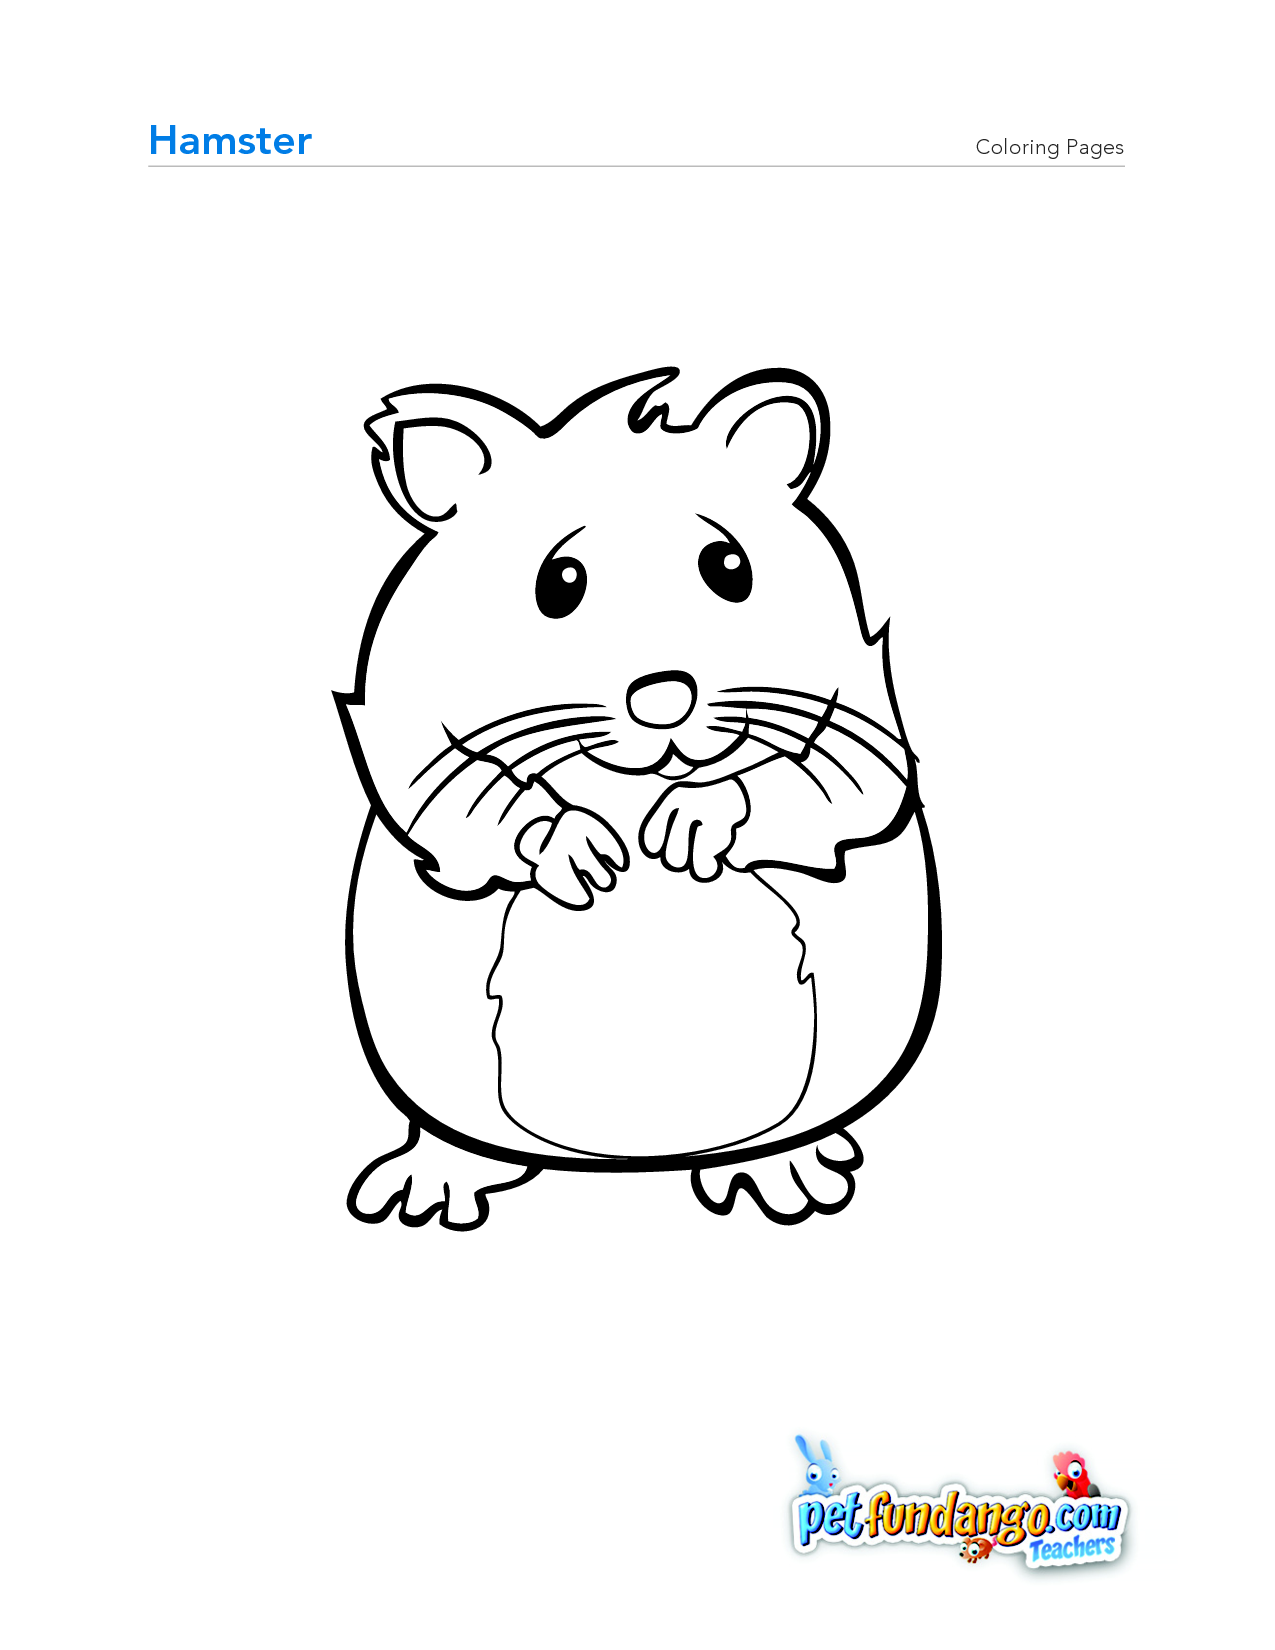 Hamster Coloring Page | OSOB | Pinterest | Preschool farm, Pet ...